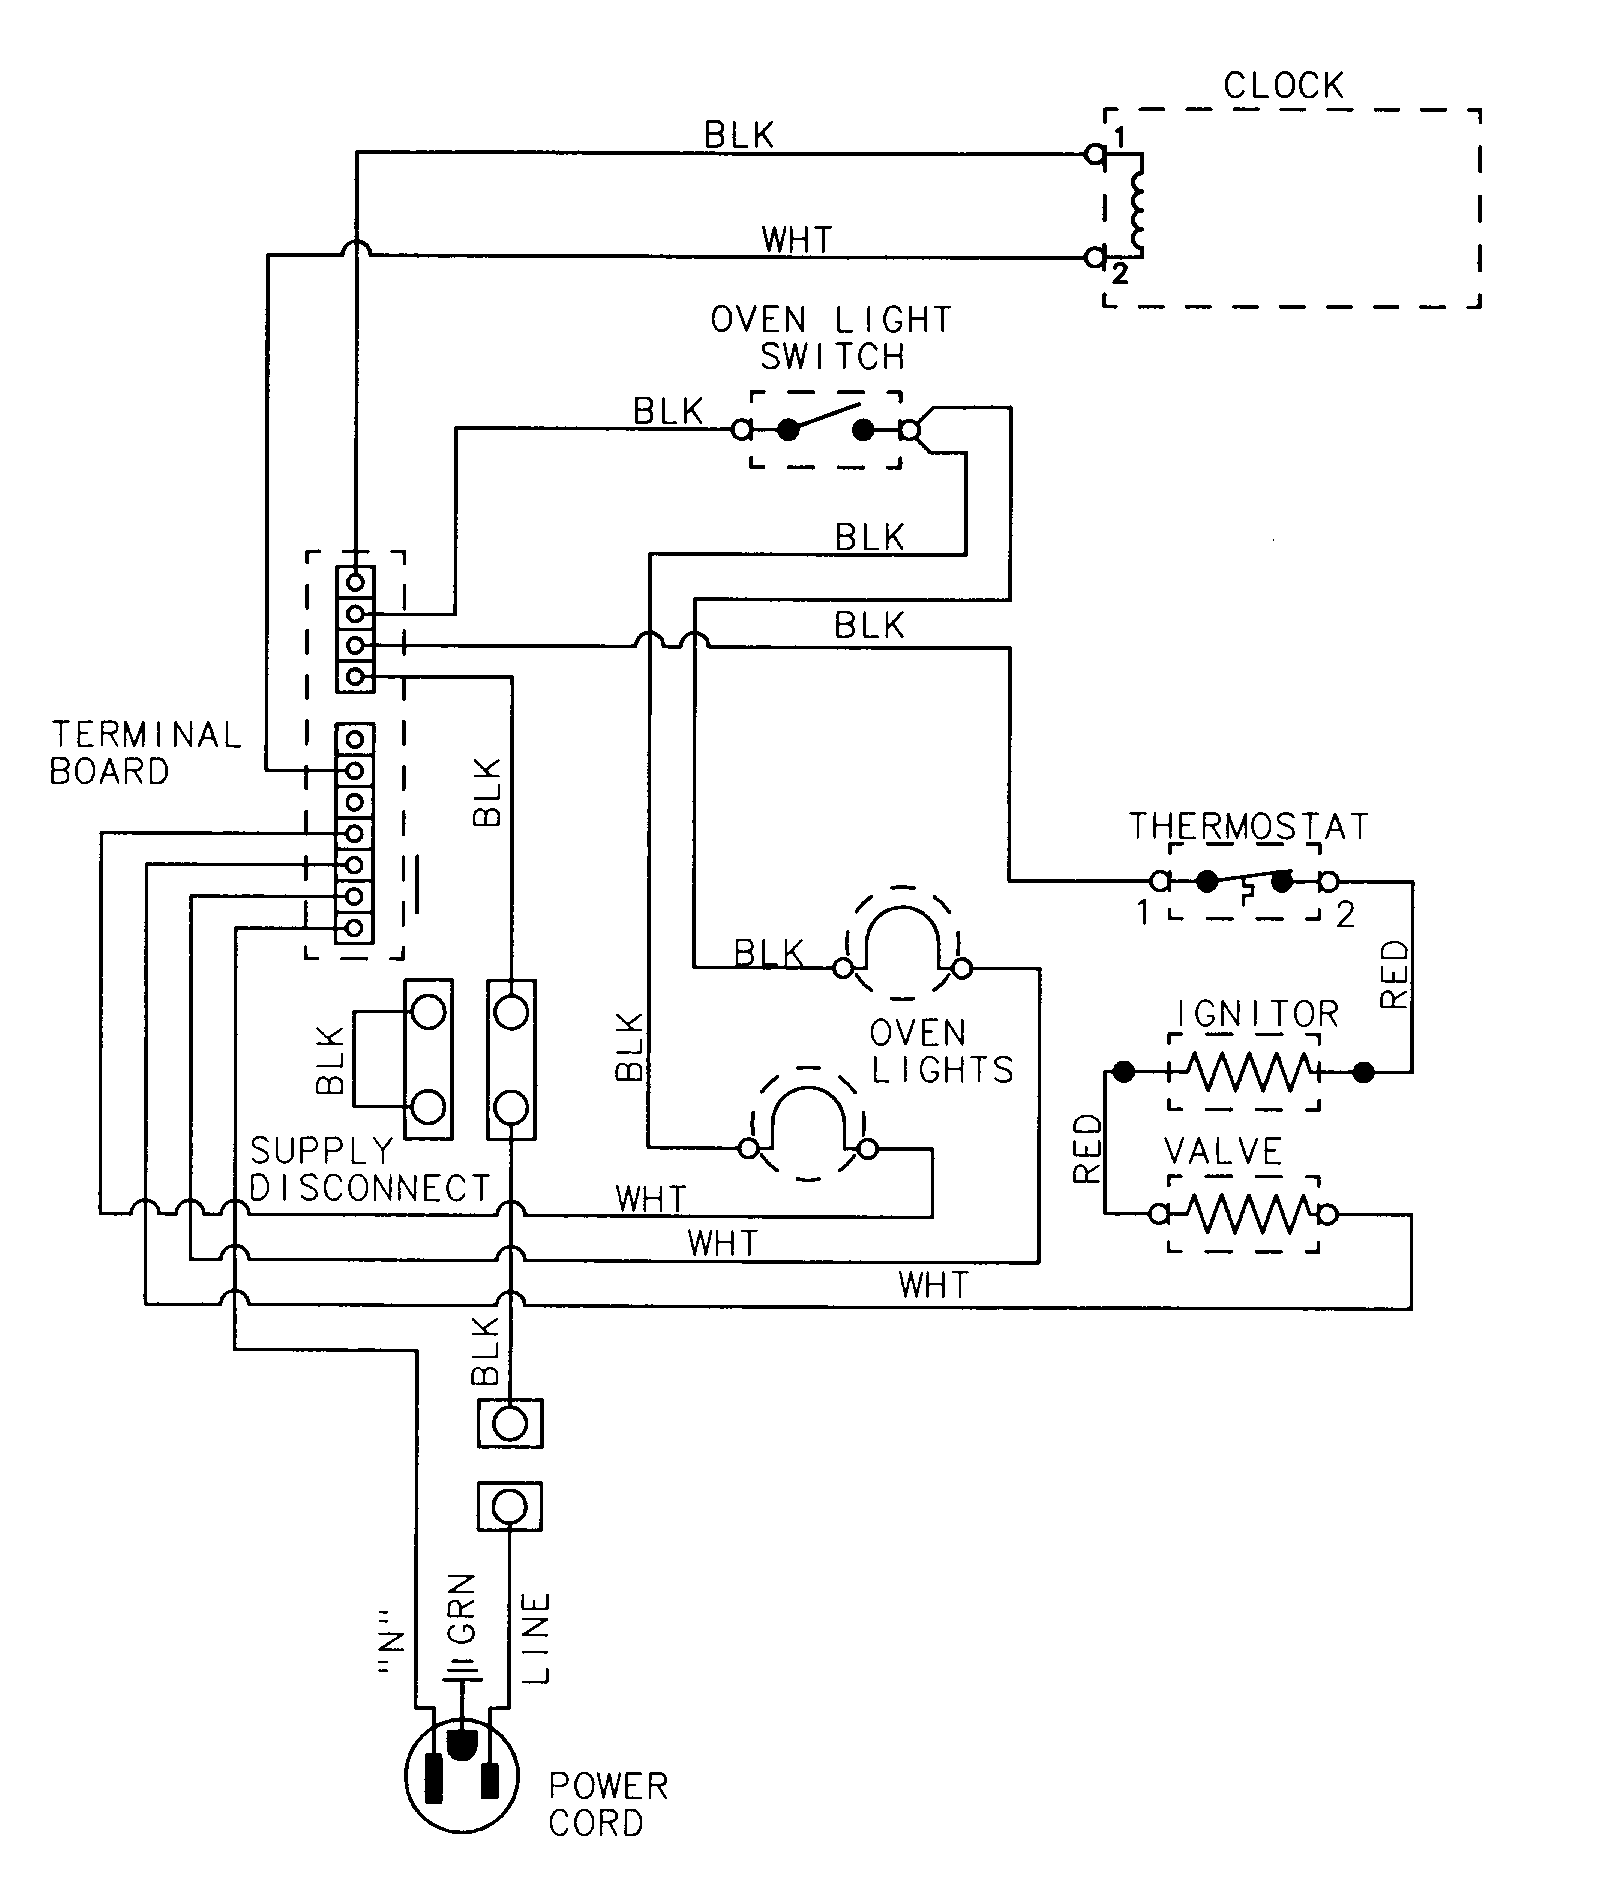 M0605087 00005 danby designer dcr88wdd wiring diagram,designer \u2022 indy500 co  at virtualis.co